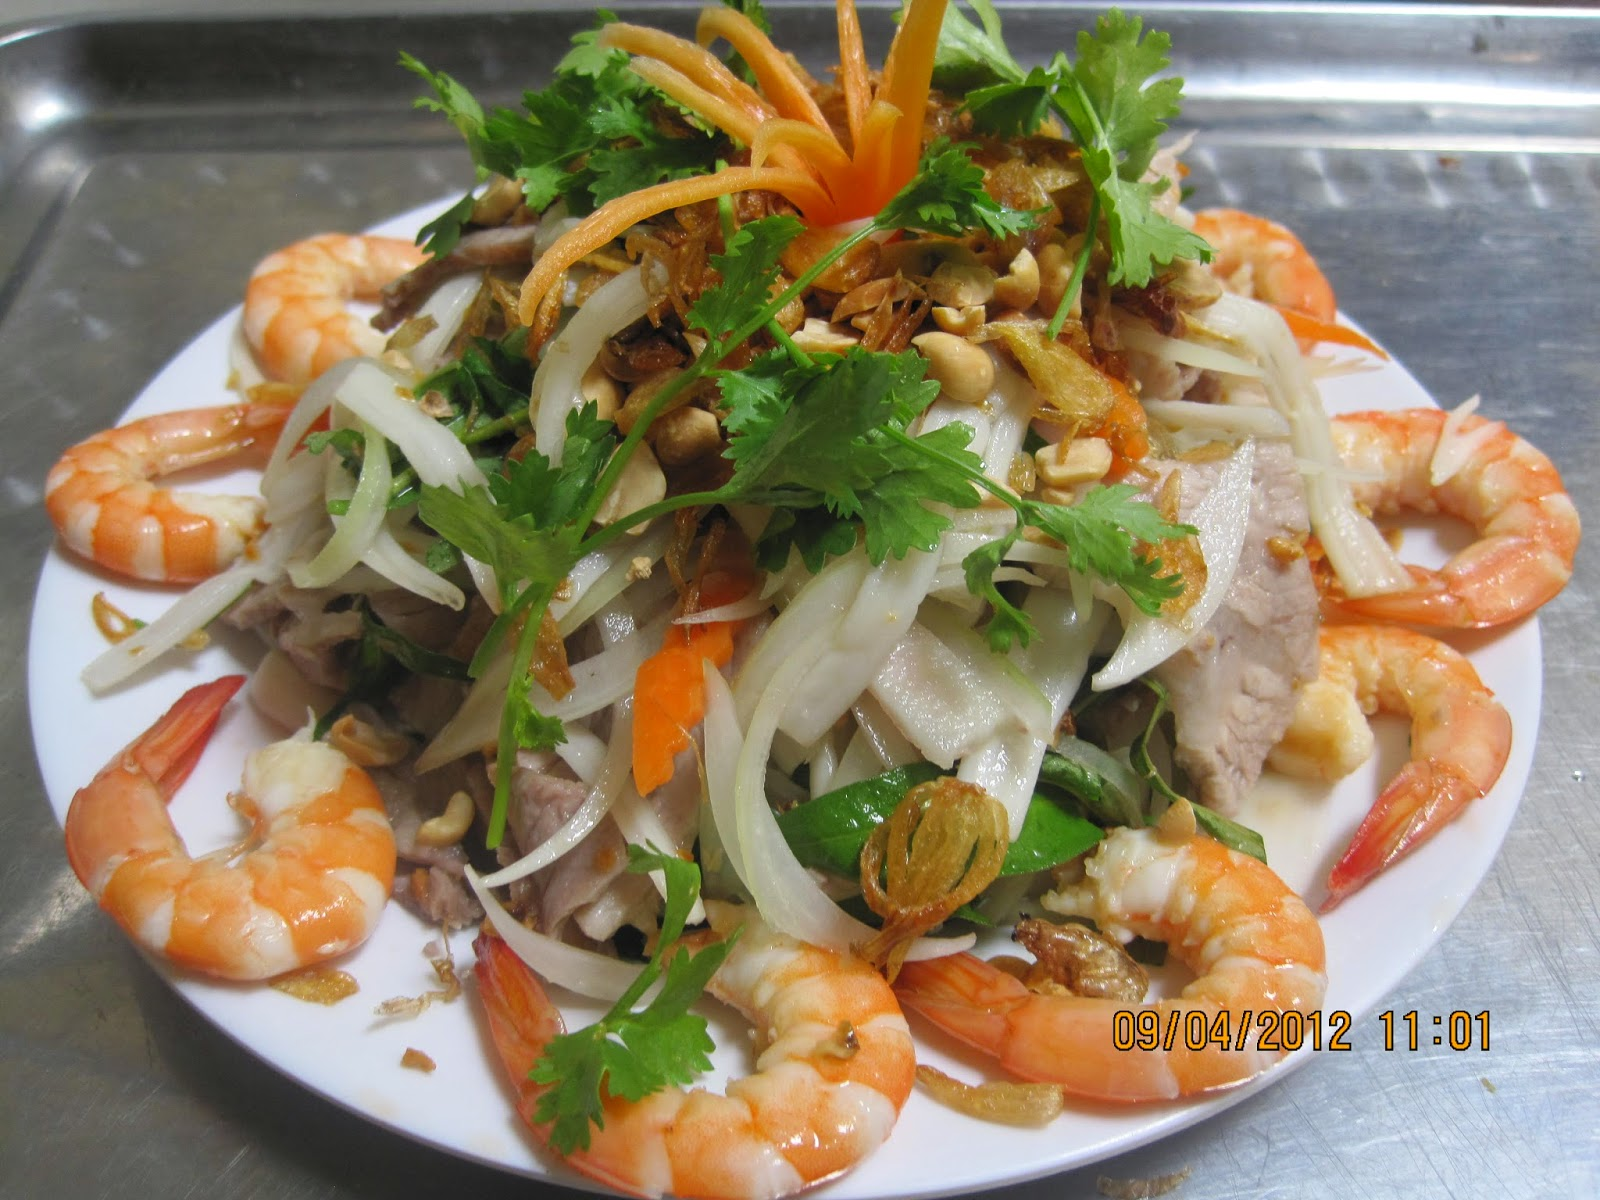 Bồn bồn salad with shrimp and meat